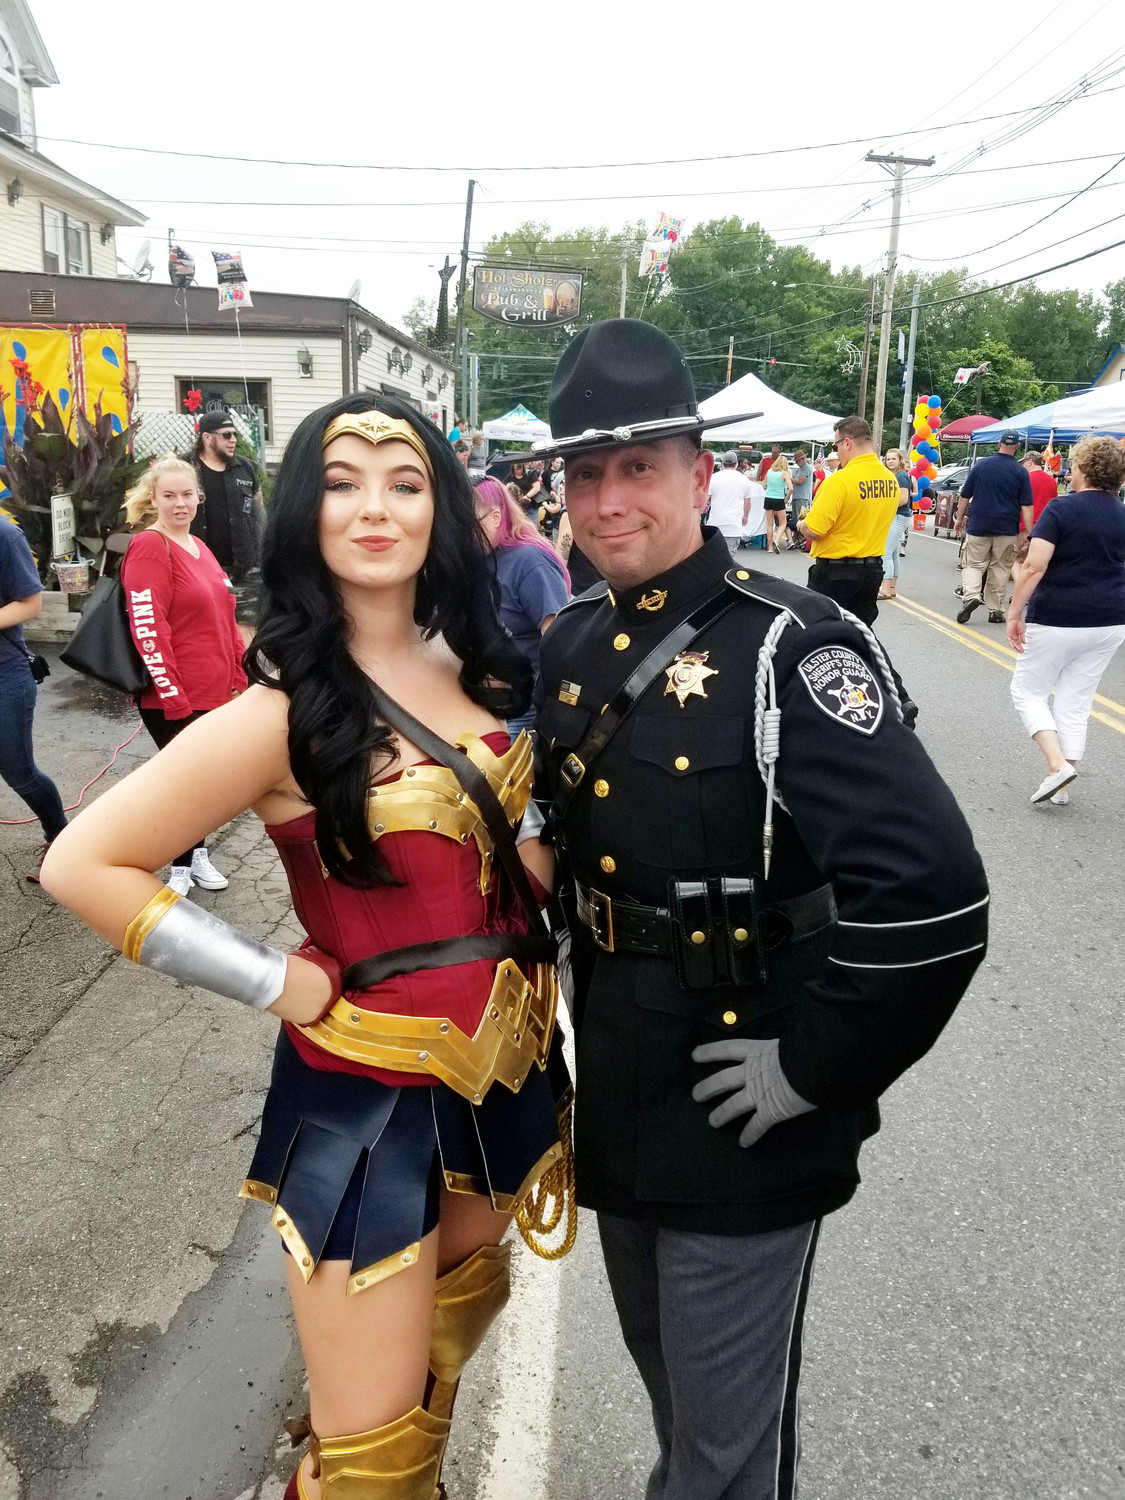 FSO Officer George Hill of the Ulster County Sheriff's Department poses with fellow superhero, Wonder Woman.